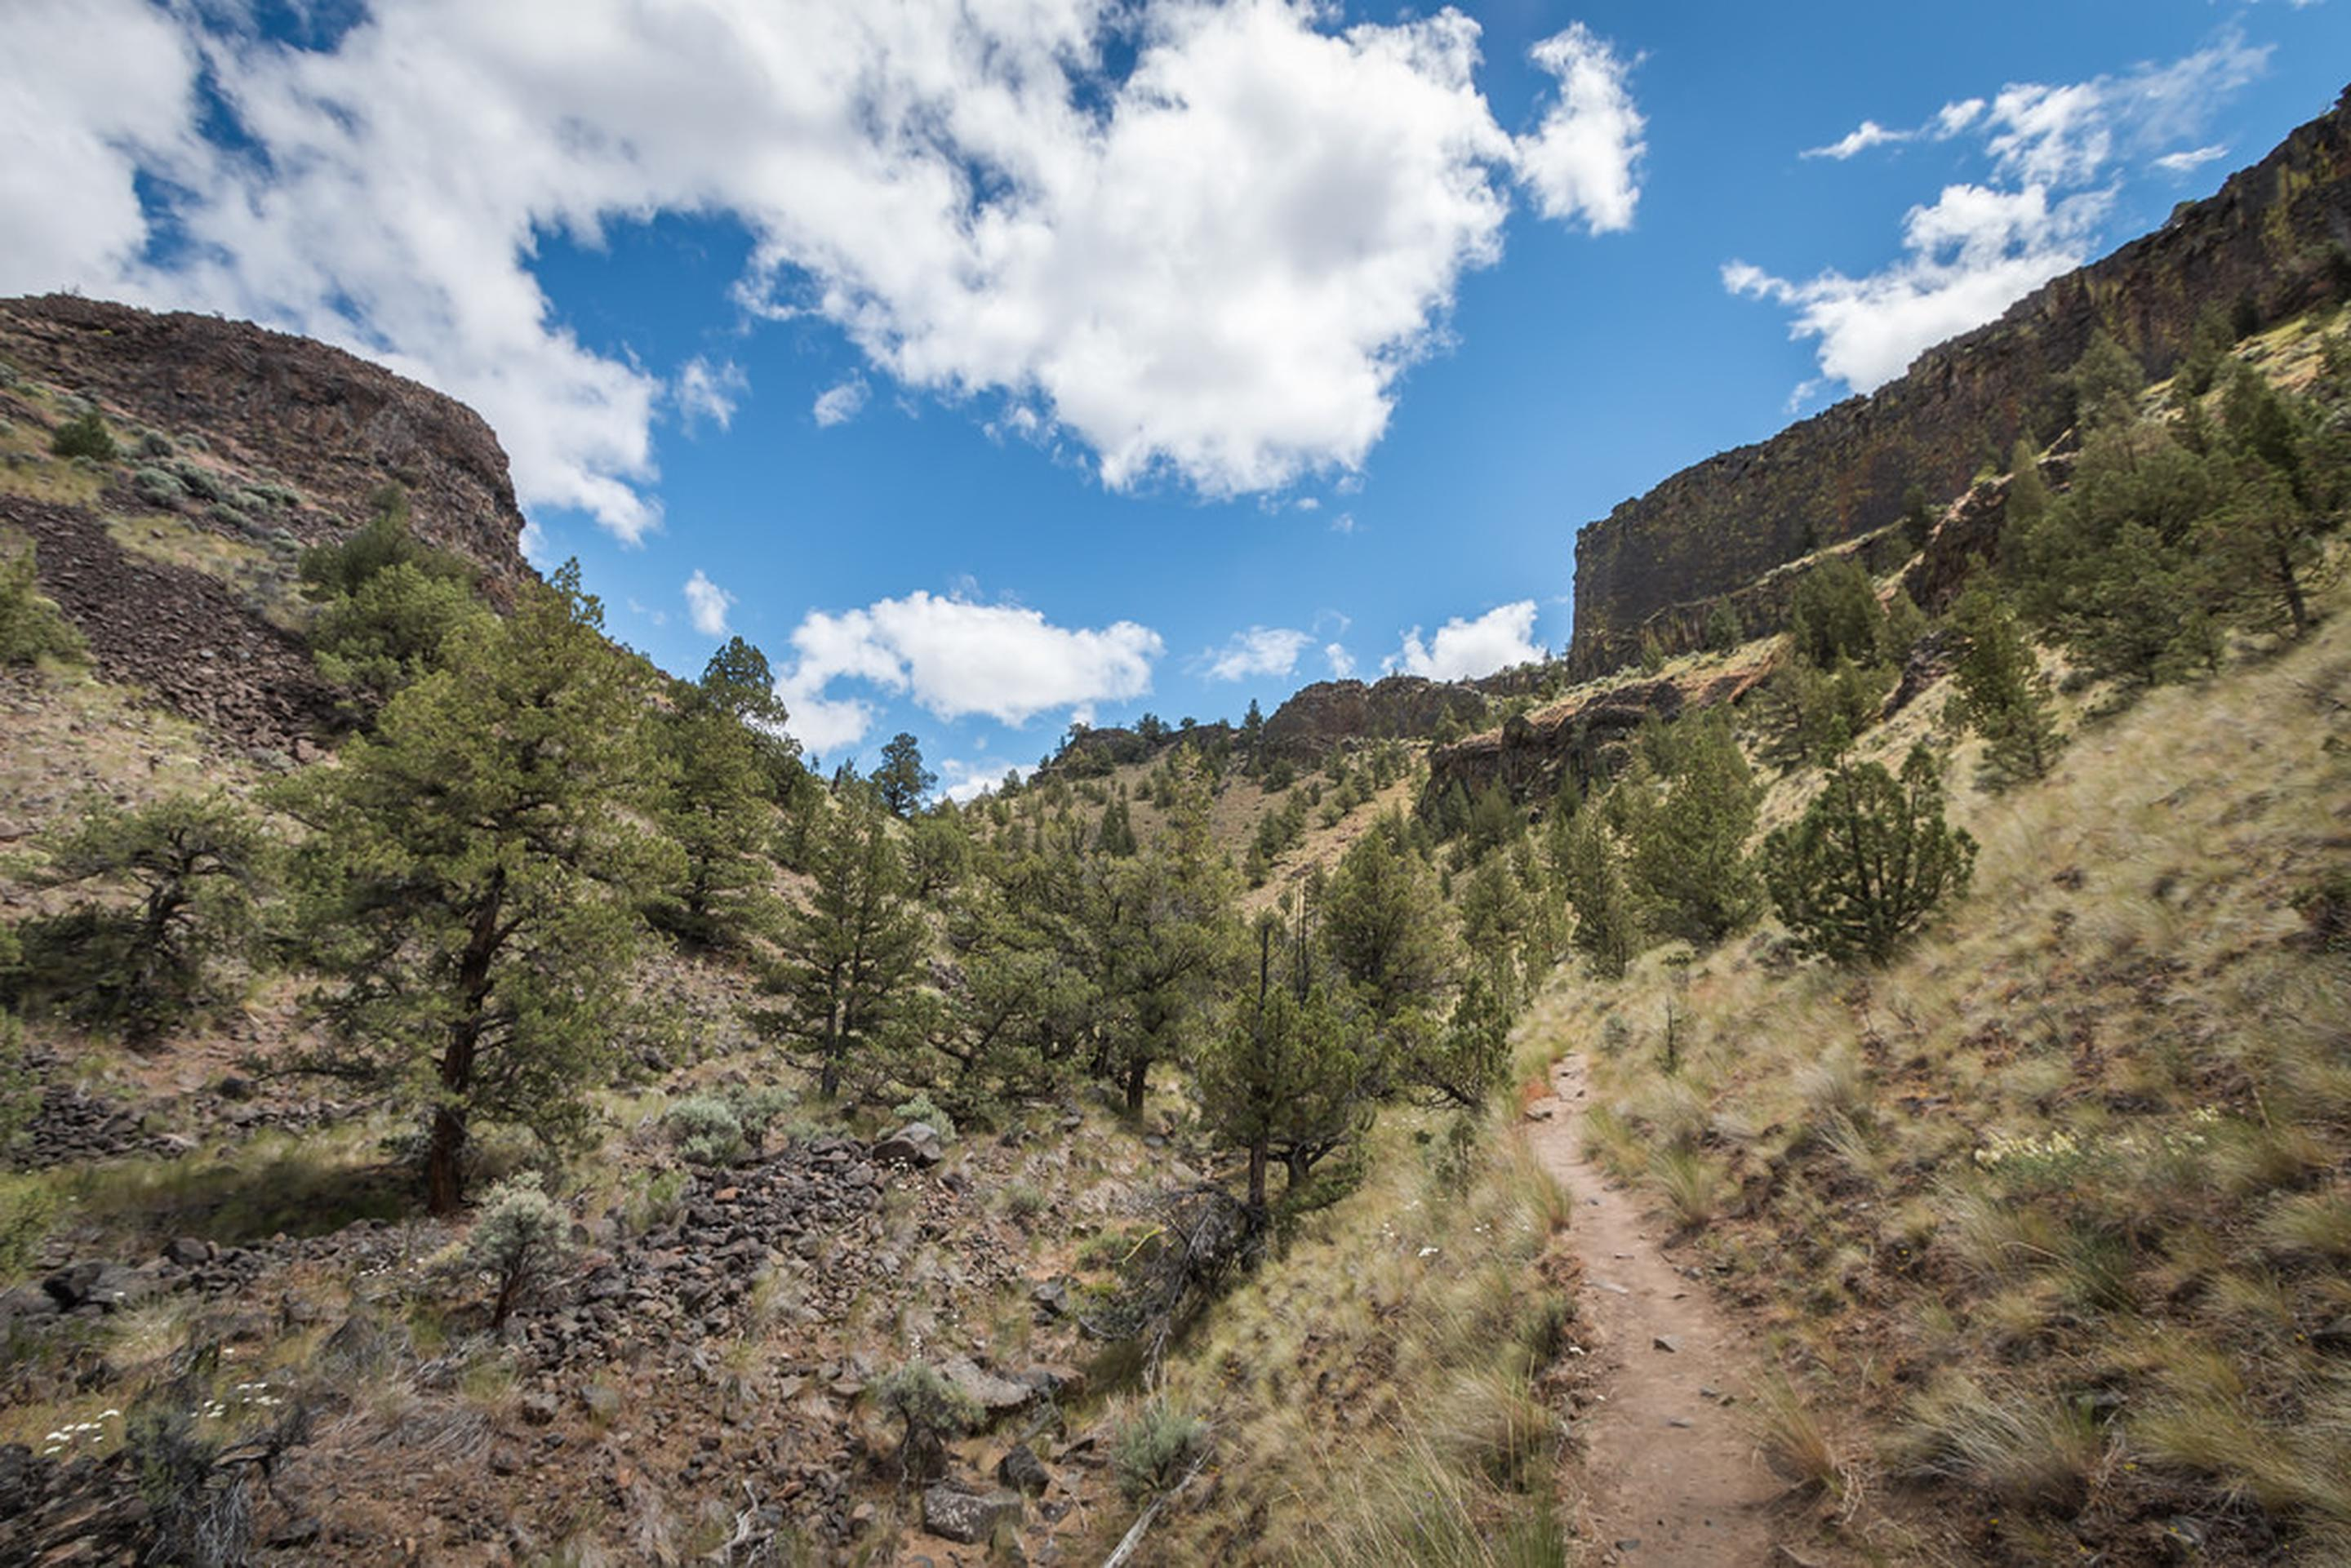 View of the hike up the Chimney Rock Trail